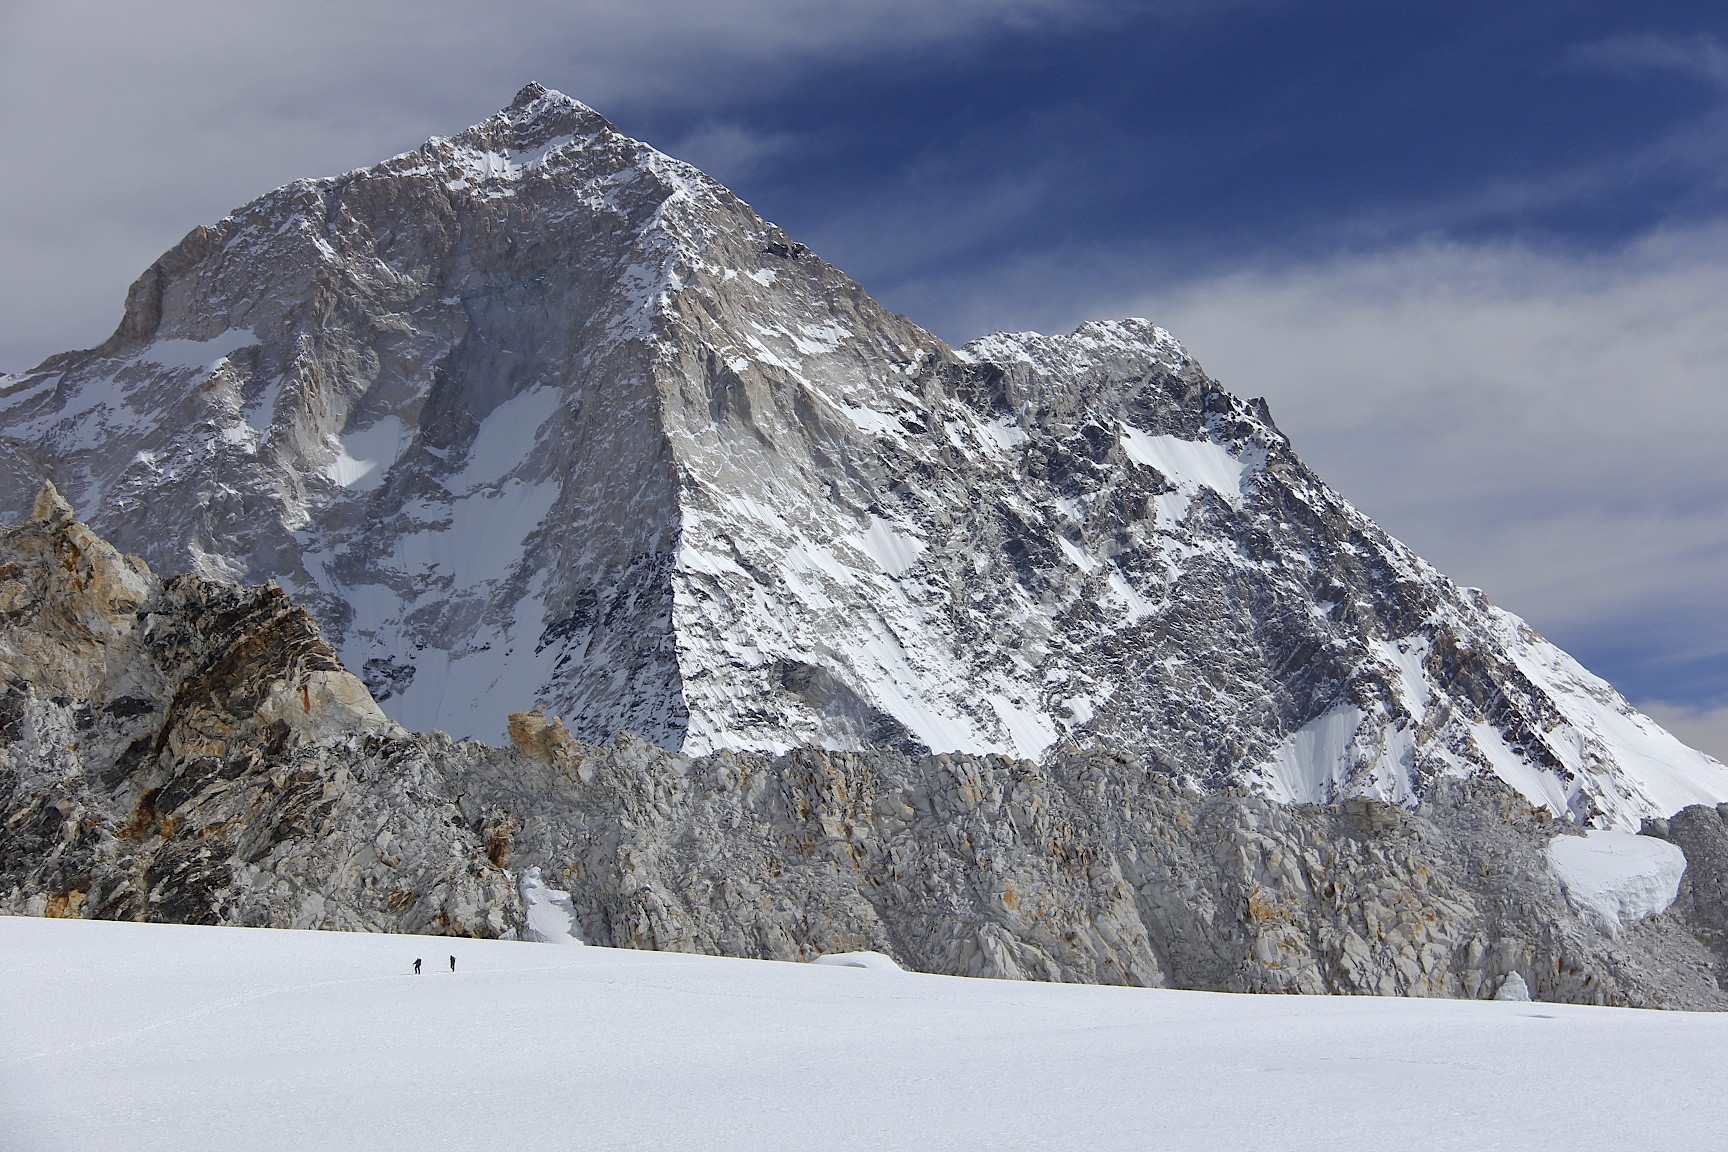 The west rib of Makalu. We are at 6,000m and Makalu is still huge!